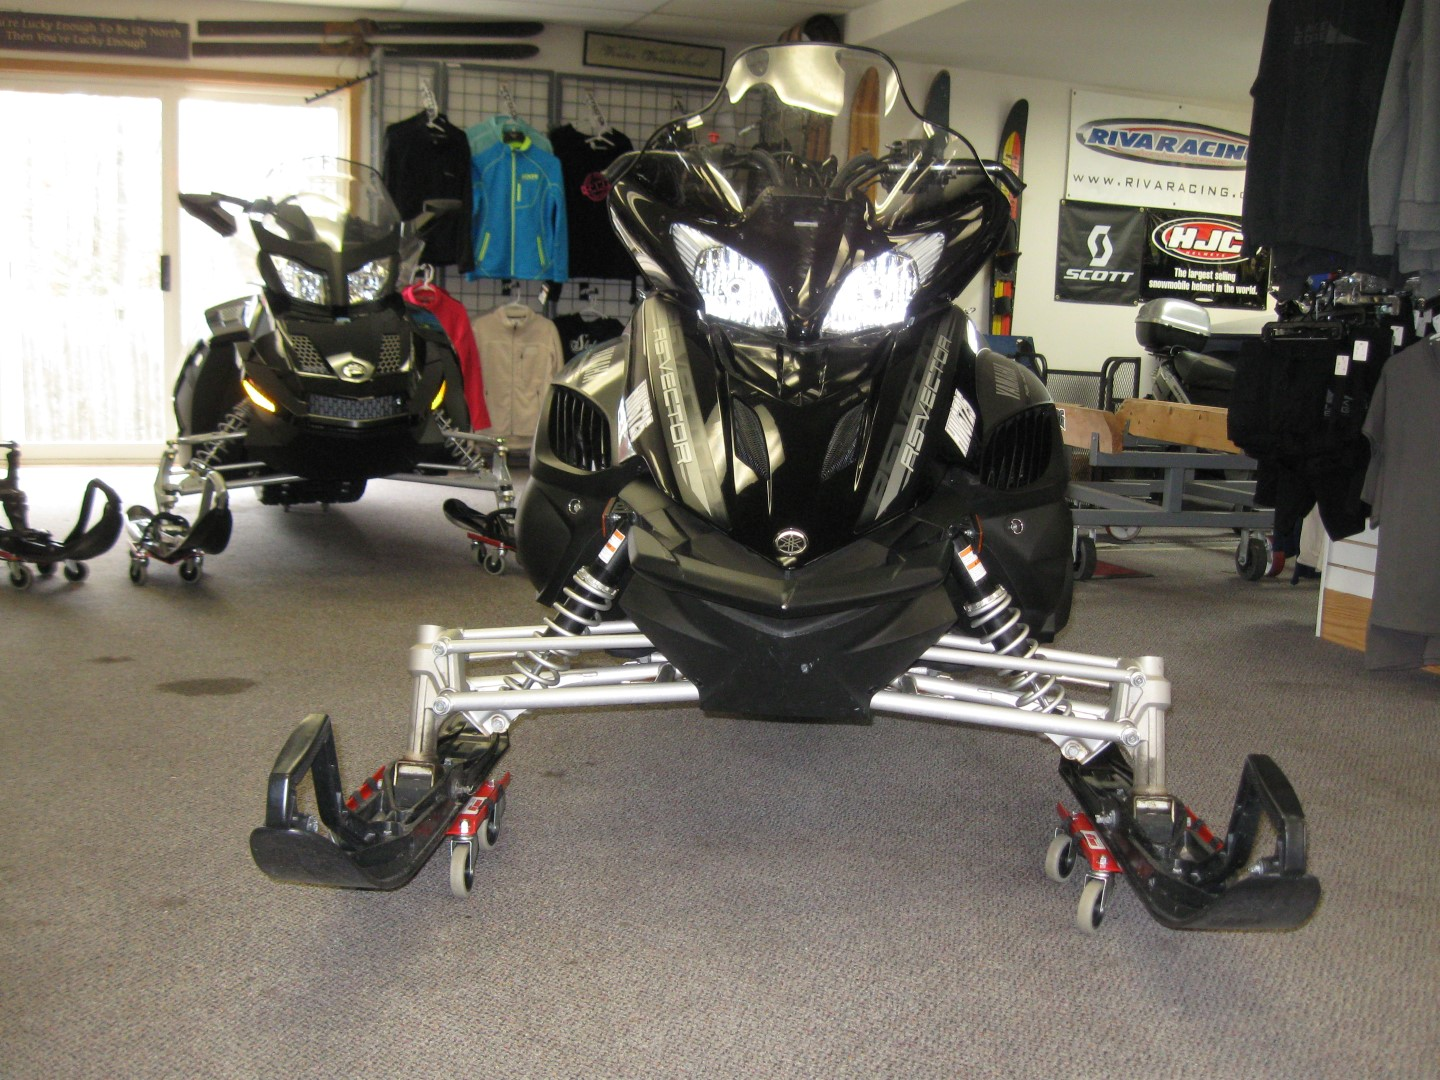 2012 Yamaha RS Vector Snowmobile front view for sale minneapolis mn